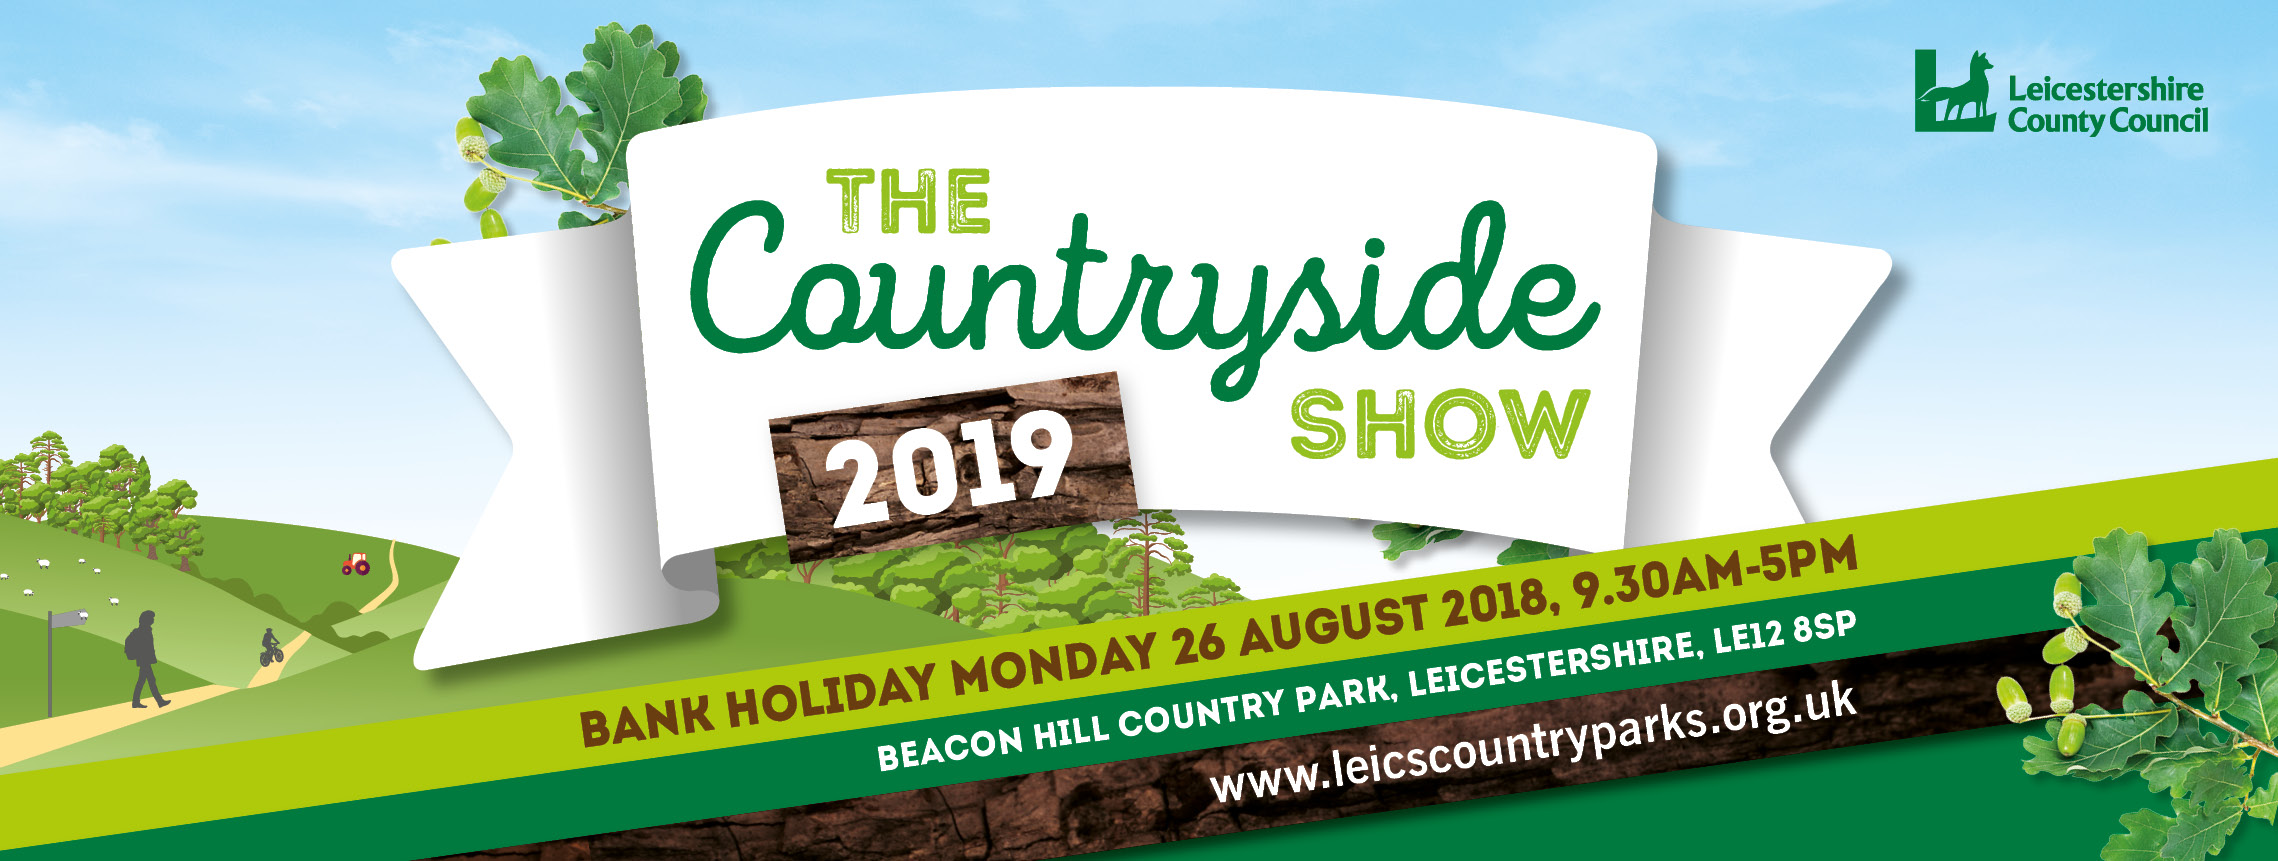 Countryside Show banner